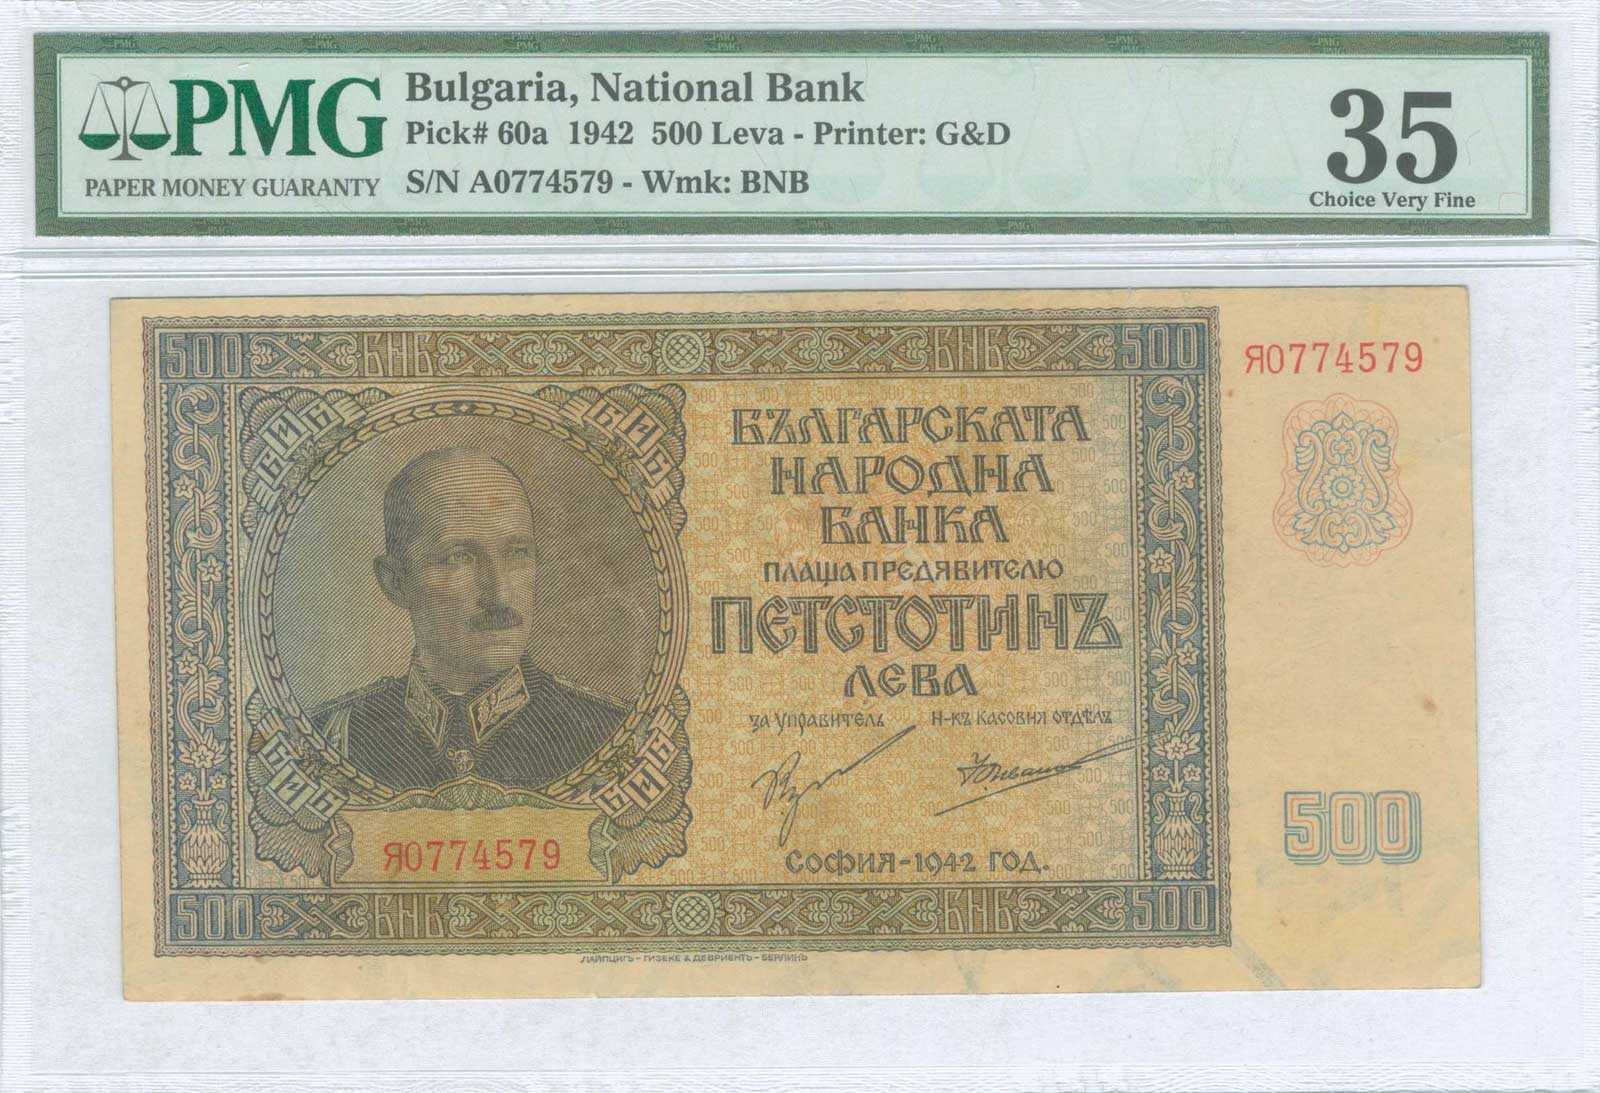 Lot 9421 - GREECE-  PAPER MONEY - BANKNOTES bulgarian occupation wwii -  A. Karamitsos Public & LIVE Bid Auction 610 Coins, Medals & Banknotes